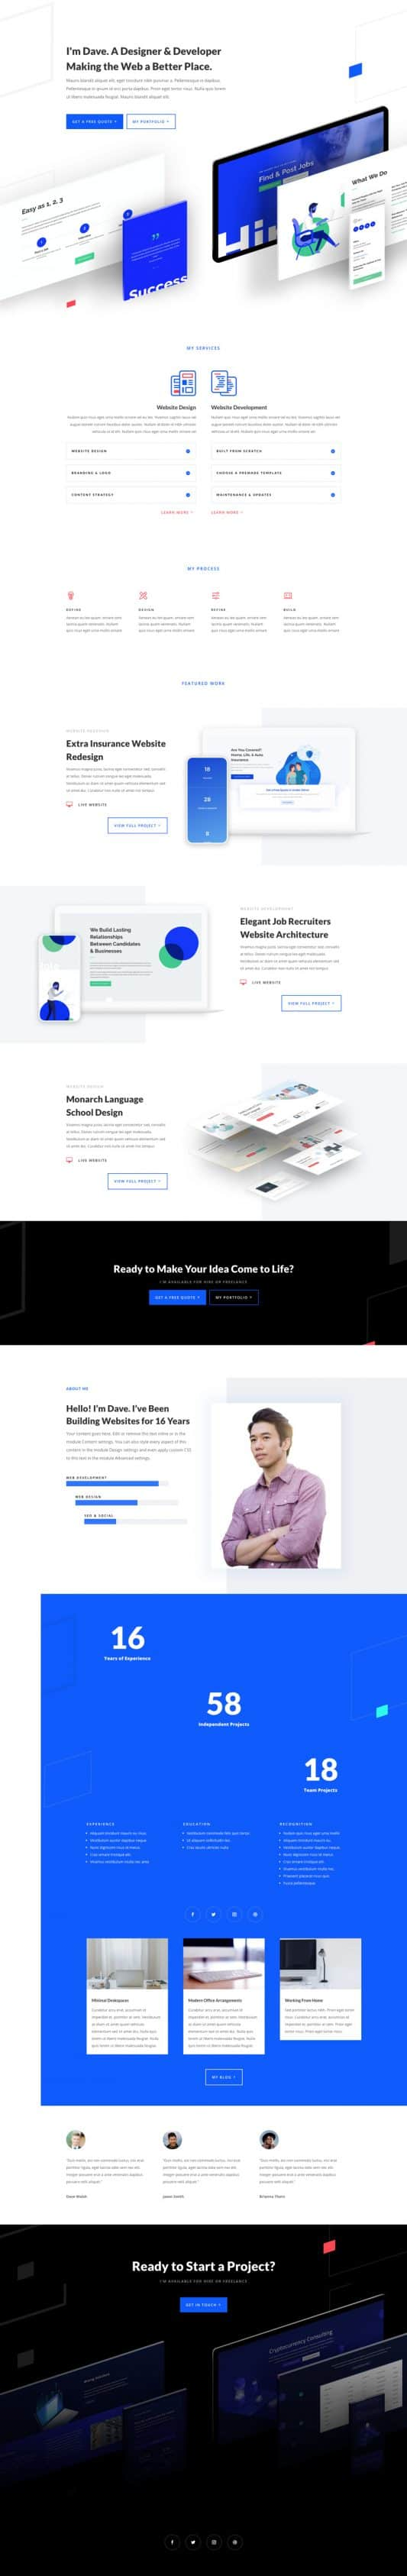 Web Freelancer Web Design 6